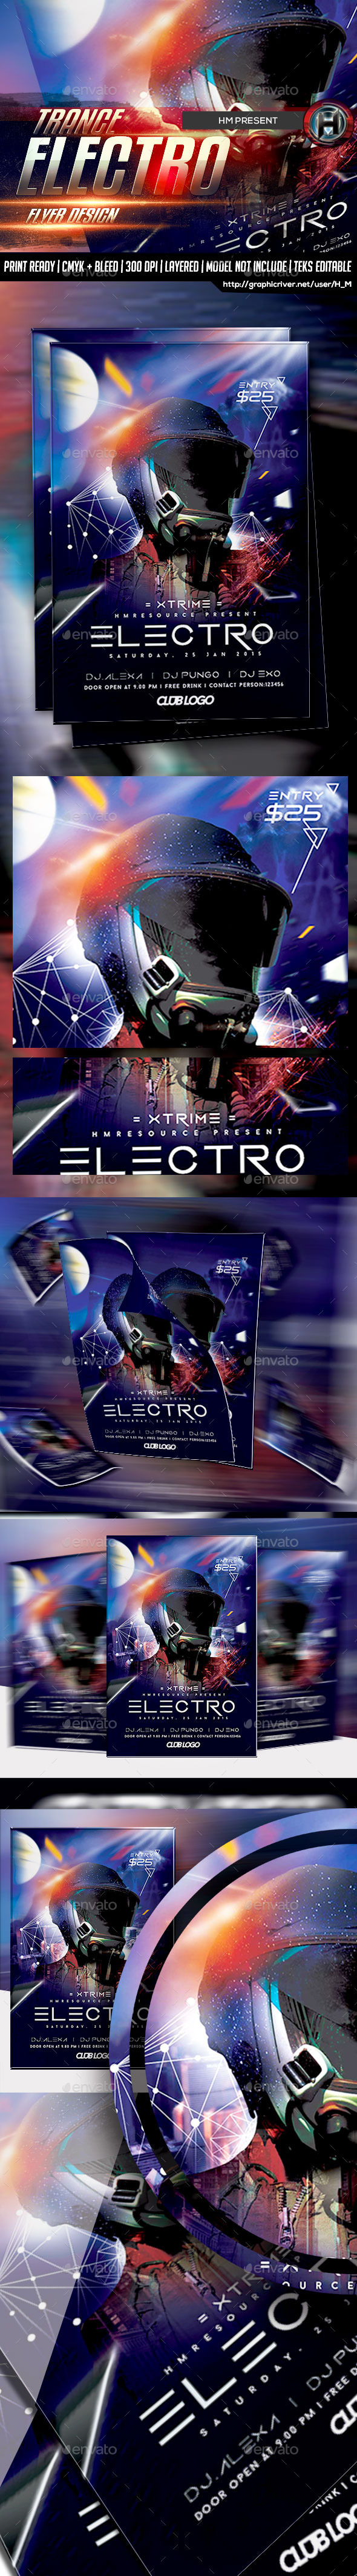 Electro DJ Guest Flyer - Events Flyers